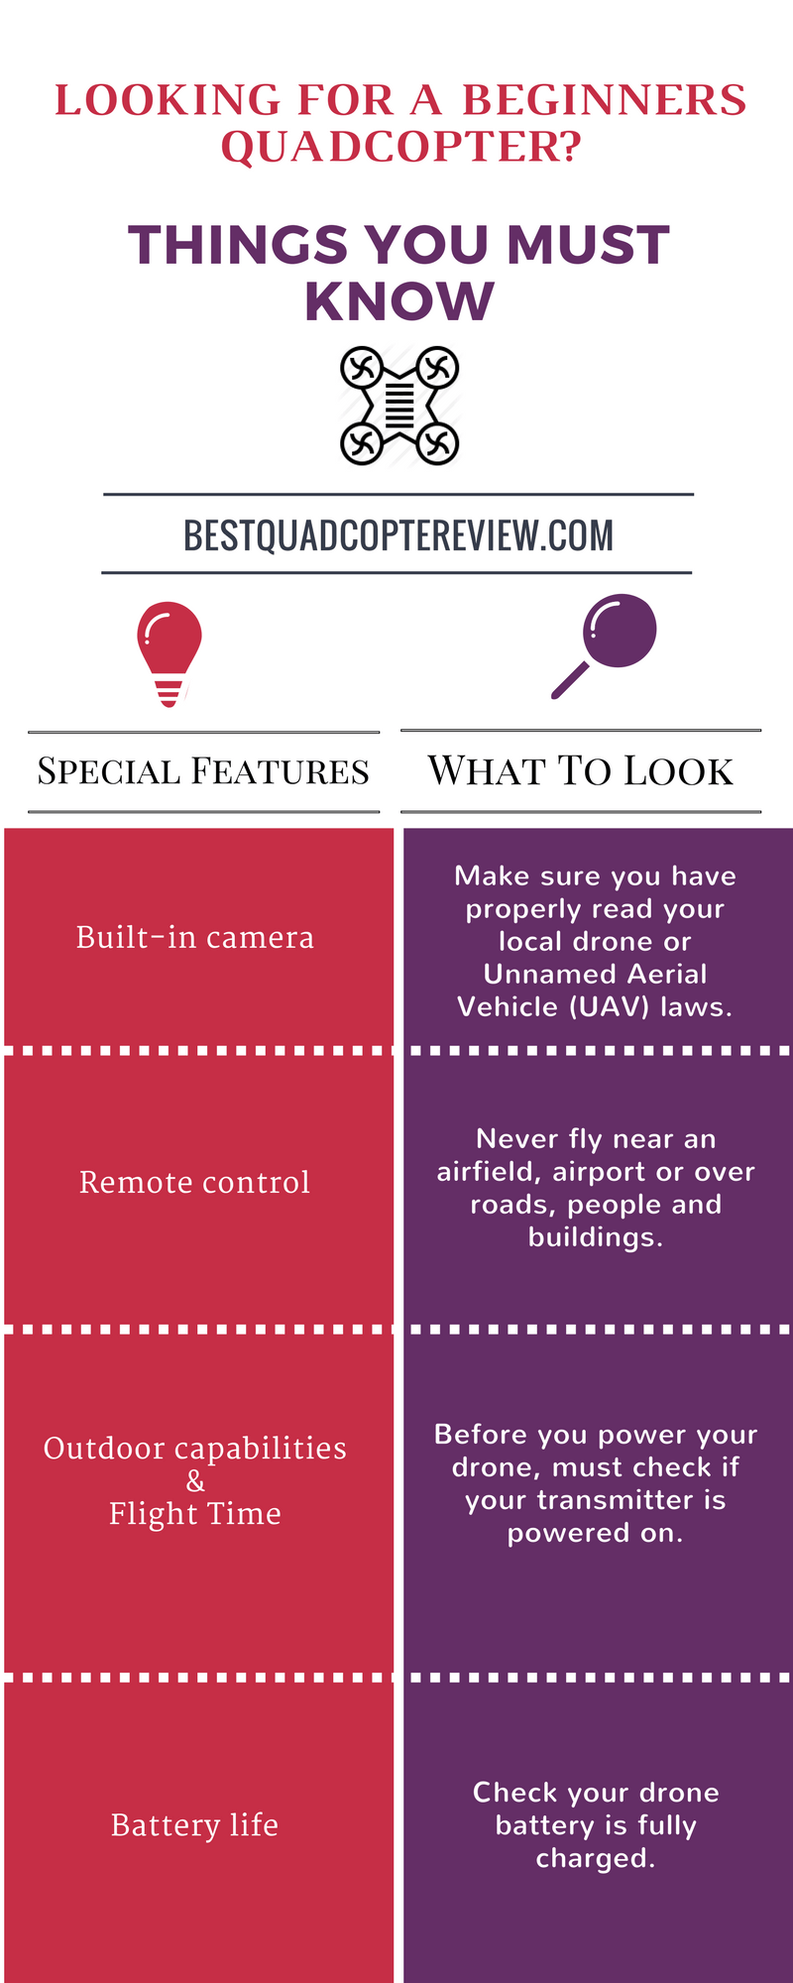 Quadcopter infographic